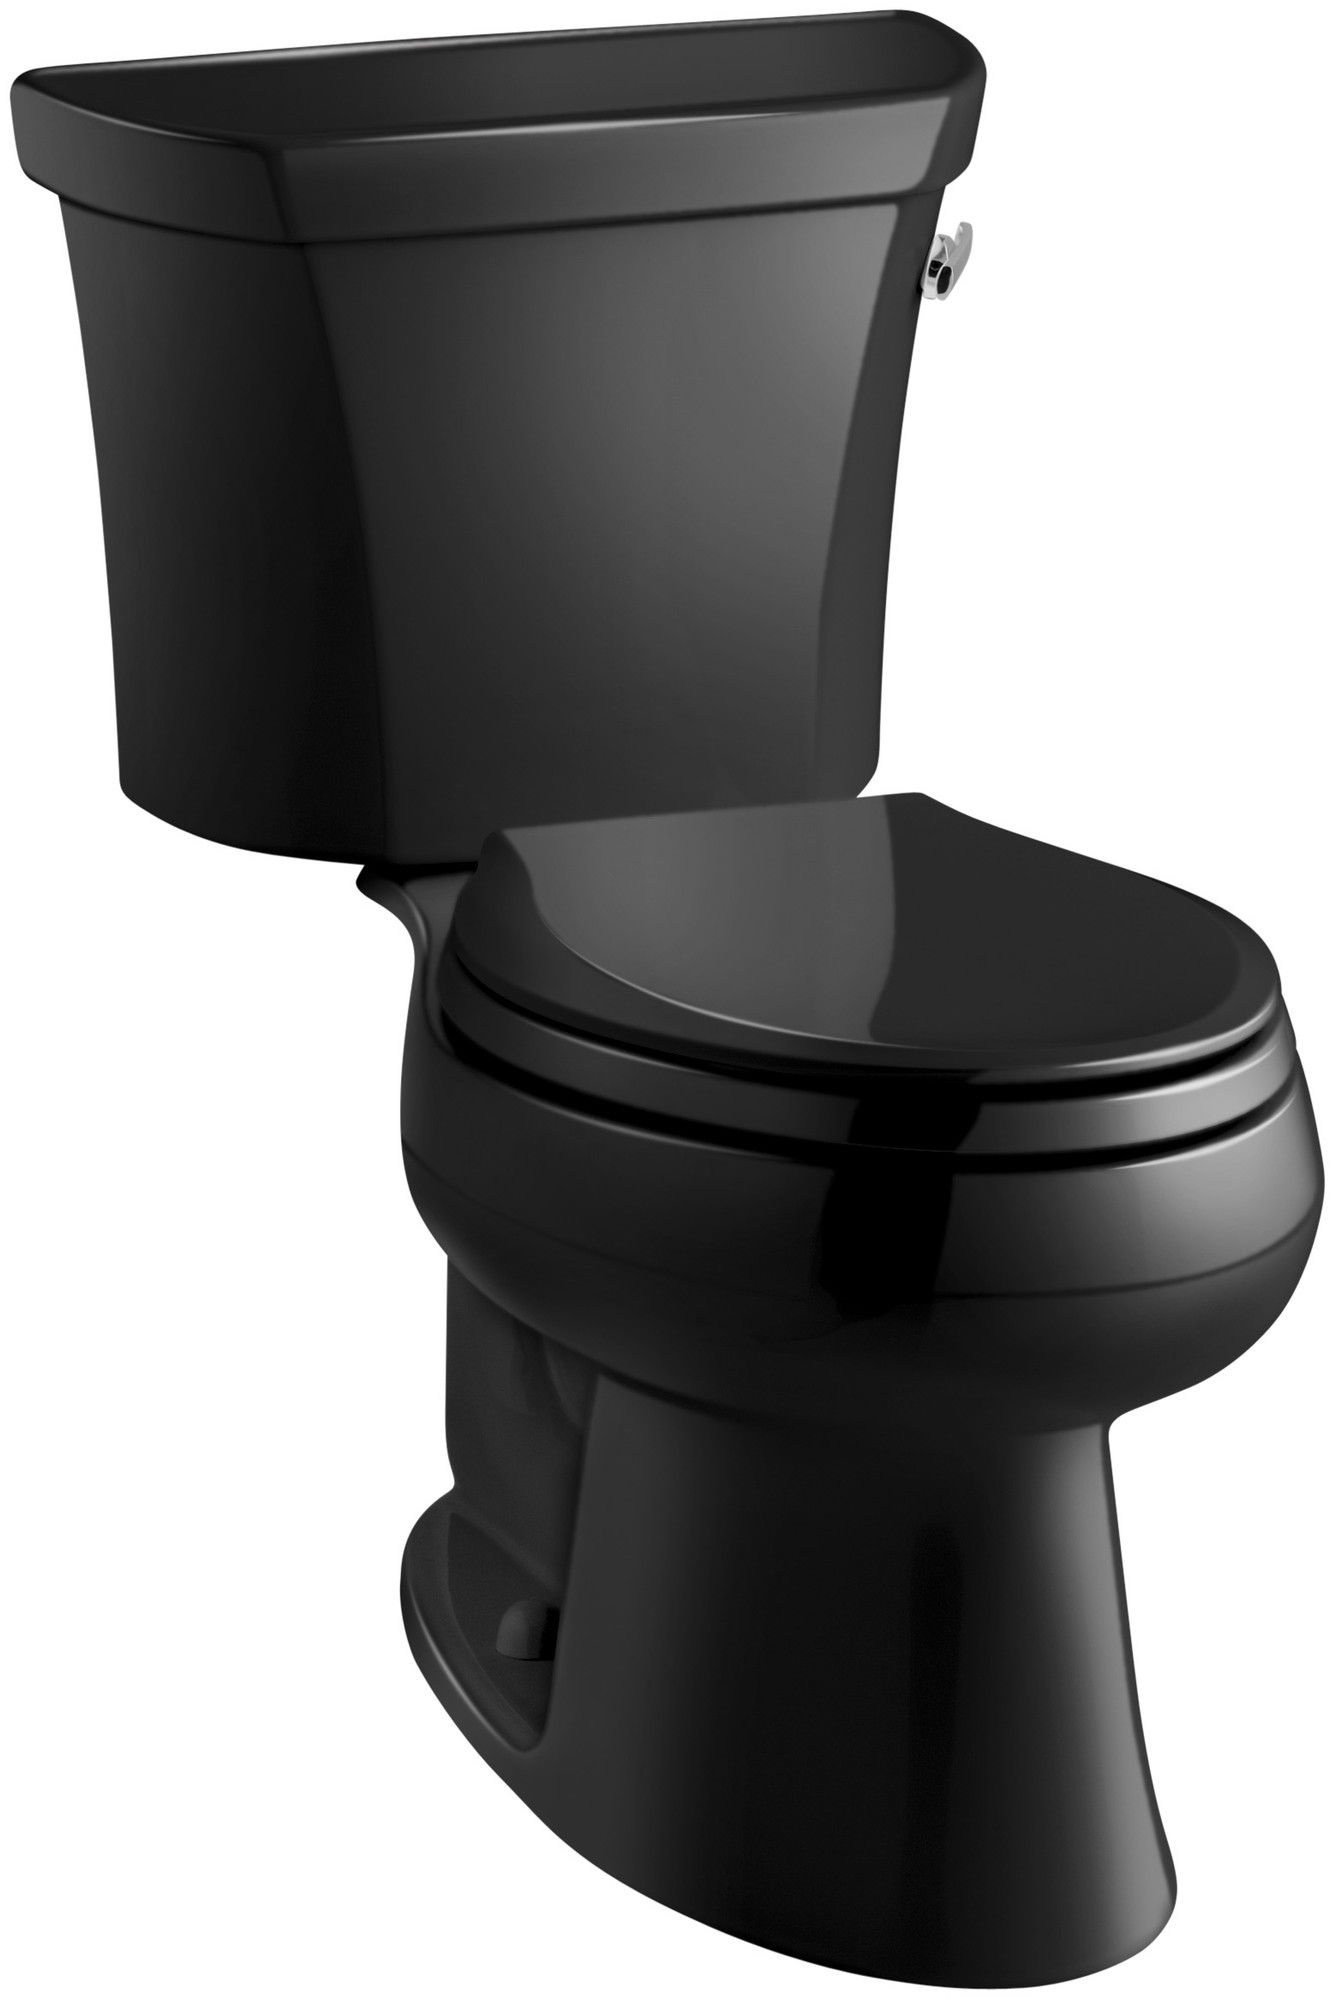 Wellworth Two Piece Elongated 1 6 Gpf Toilet With Class Five Flush